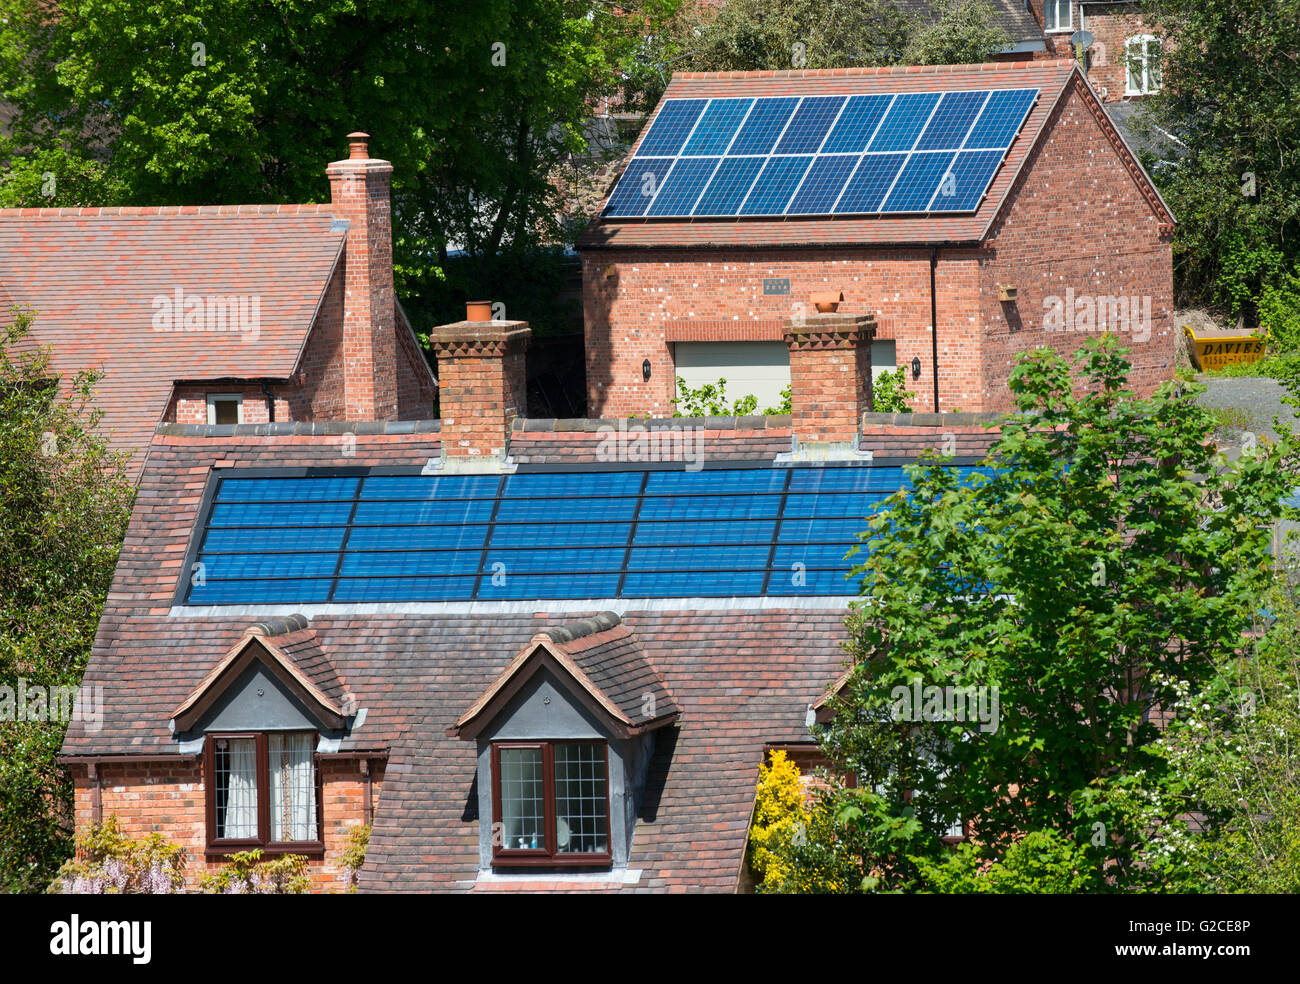 Photovoltaic panels on buildings in Cleobury Mortimer, Shropshire, England, UK. - Stock Image